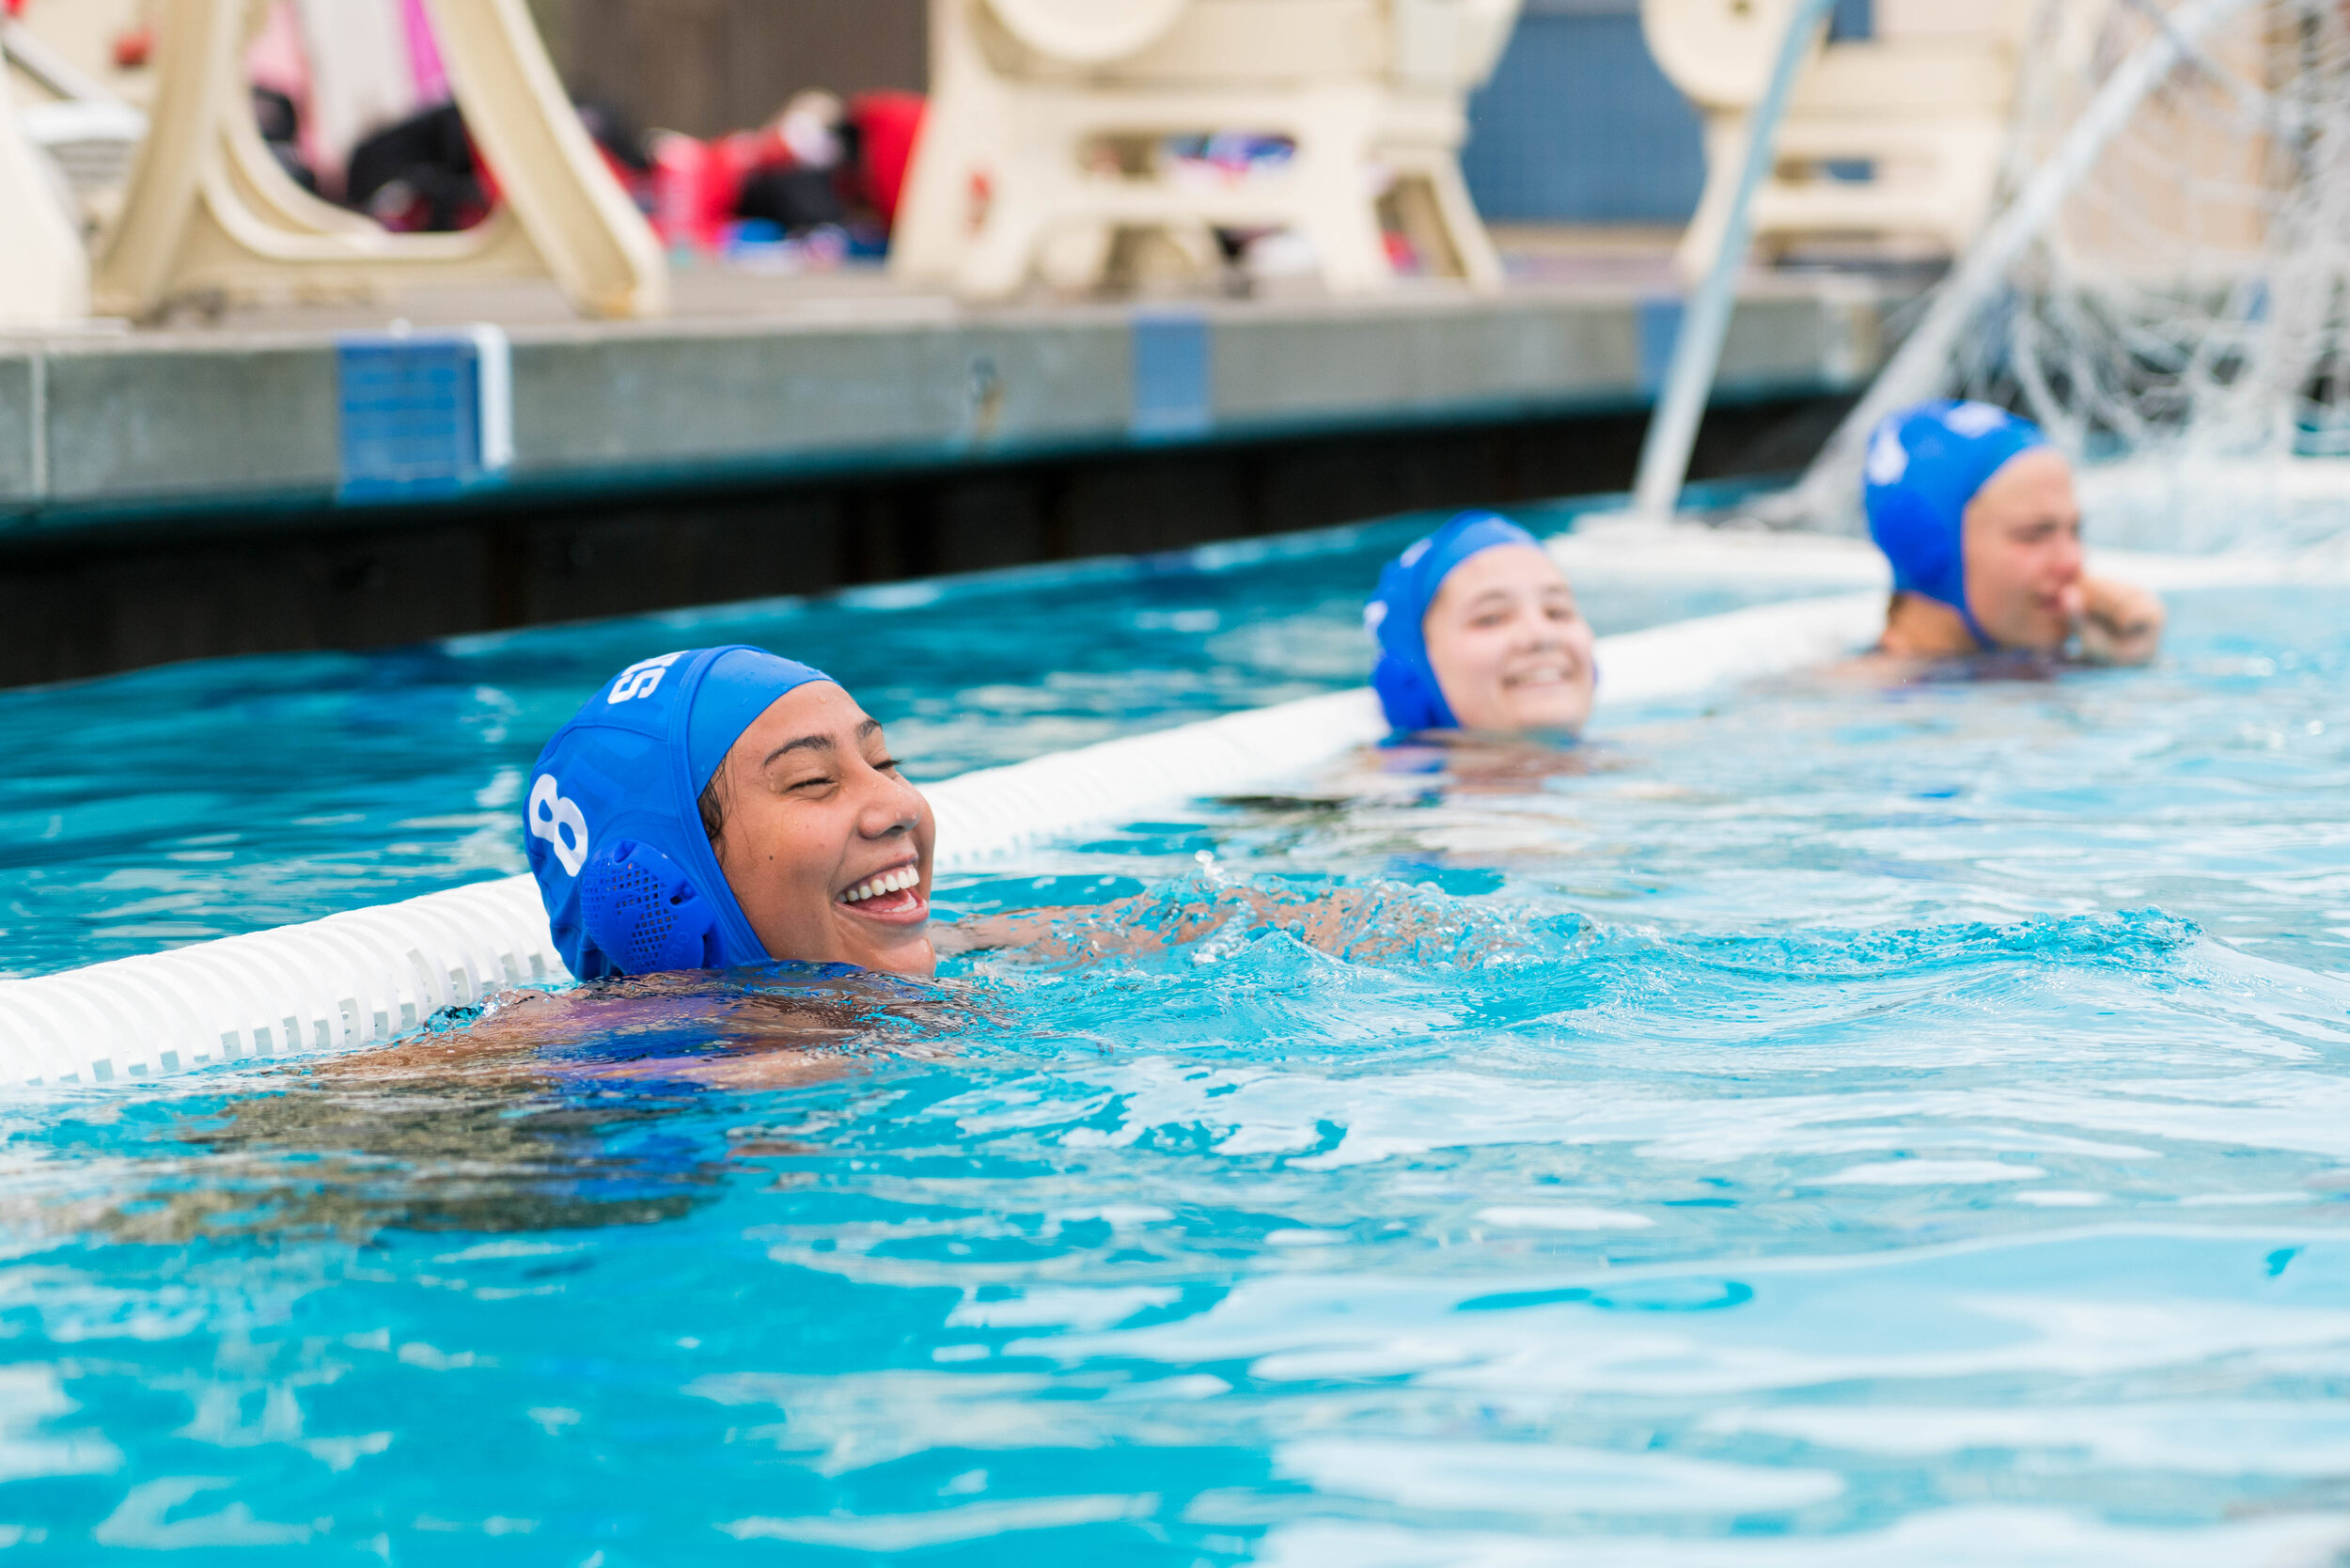 Even though their opponents were tough, The Corsairs were wearing smiles during their match against the SBCC Vaqueros at the Mt. SAC Mountie Classic Tournament hosted by Fullerton College in Fullerton, Calif. on September 28, 2019. Ruth Canales (8) in good spirits before the start of the second half. (Michael Waas / The Corsair)